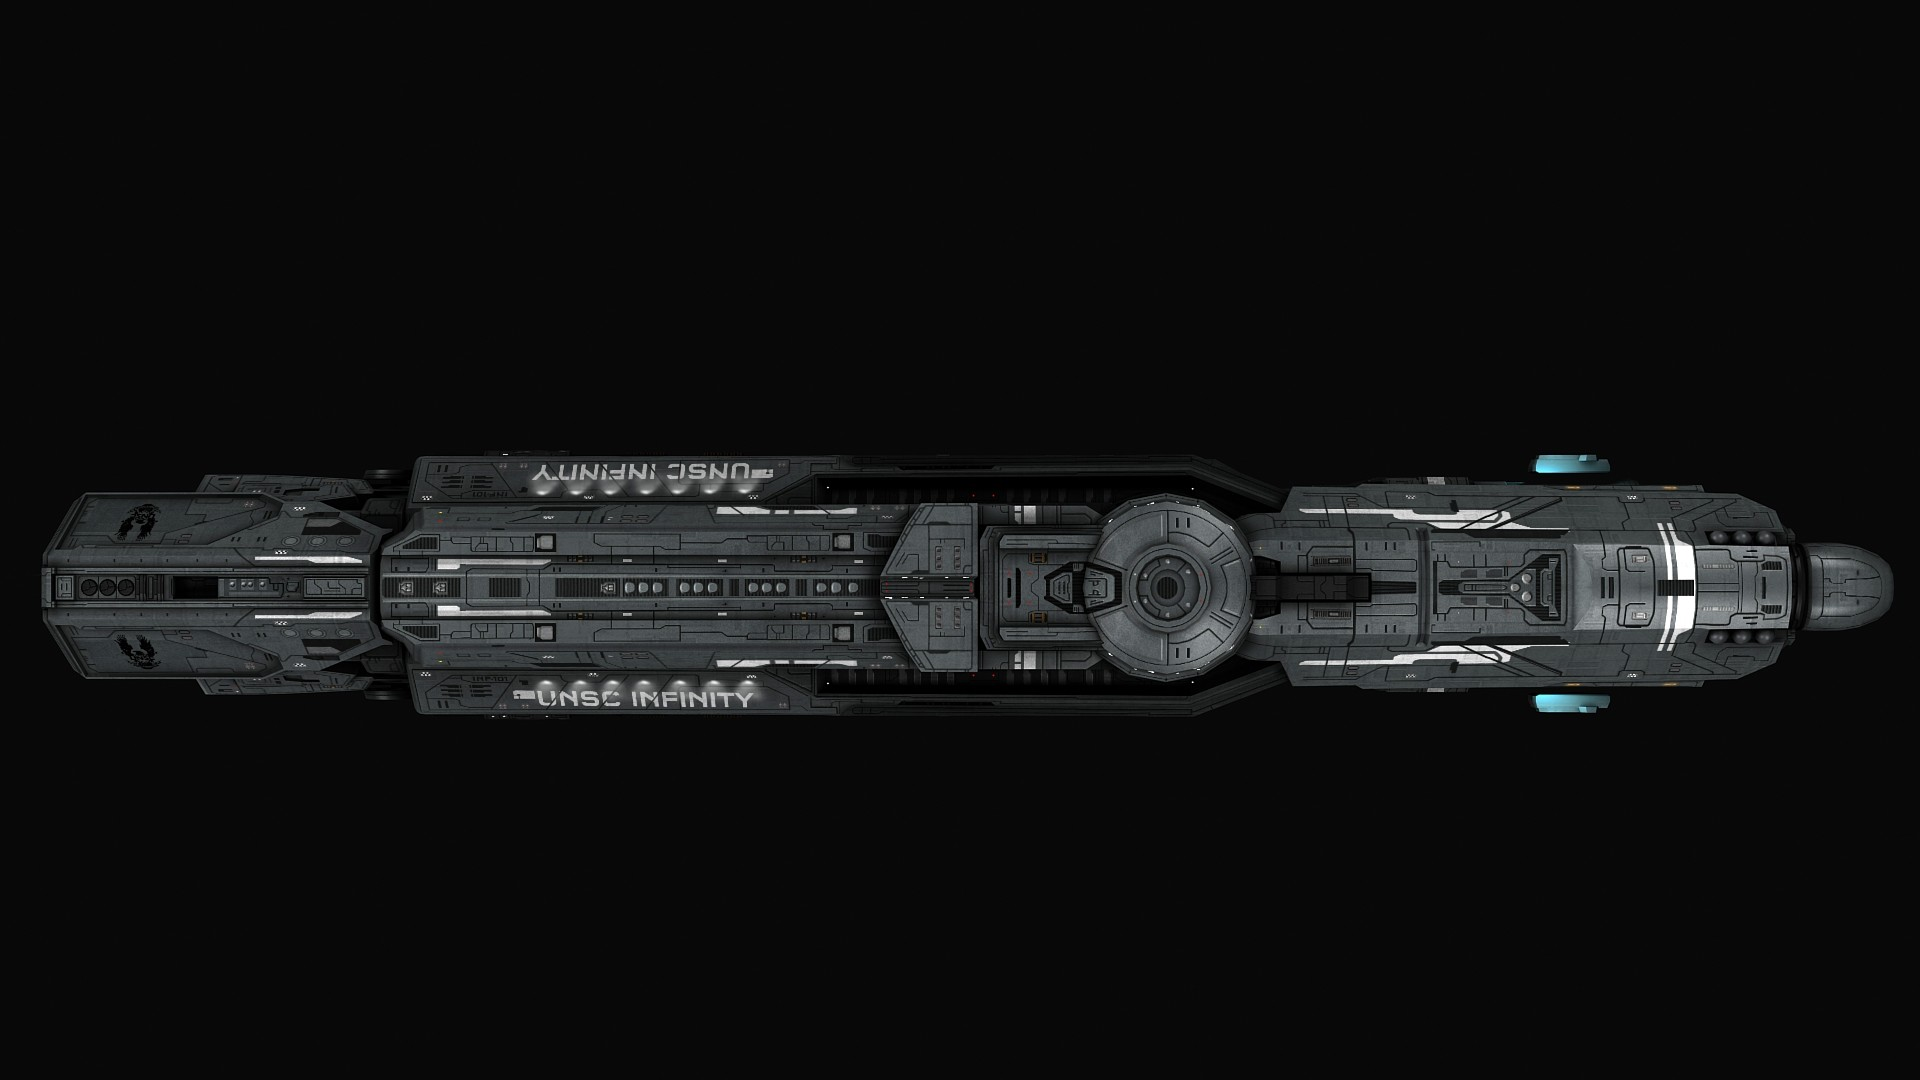 ArtStation - Sins of the Prophets: UNSC Infinity-class